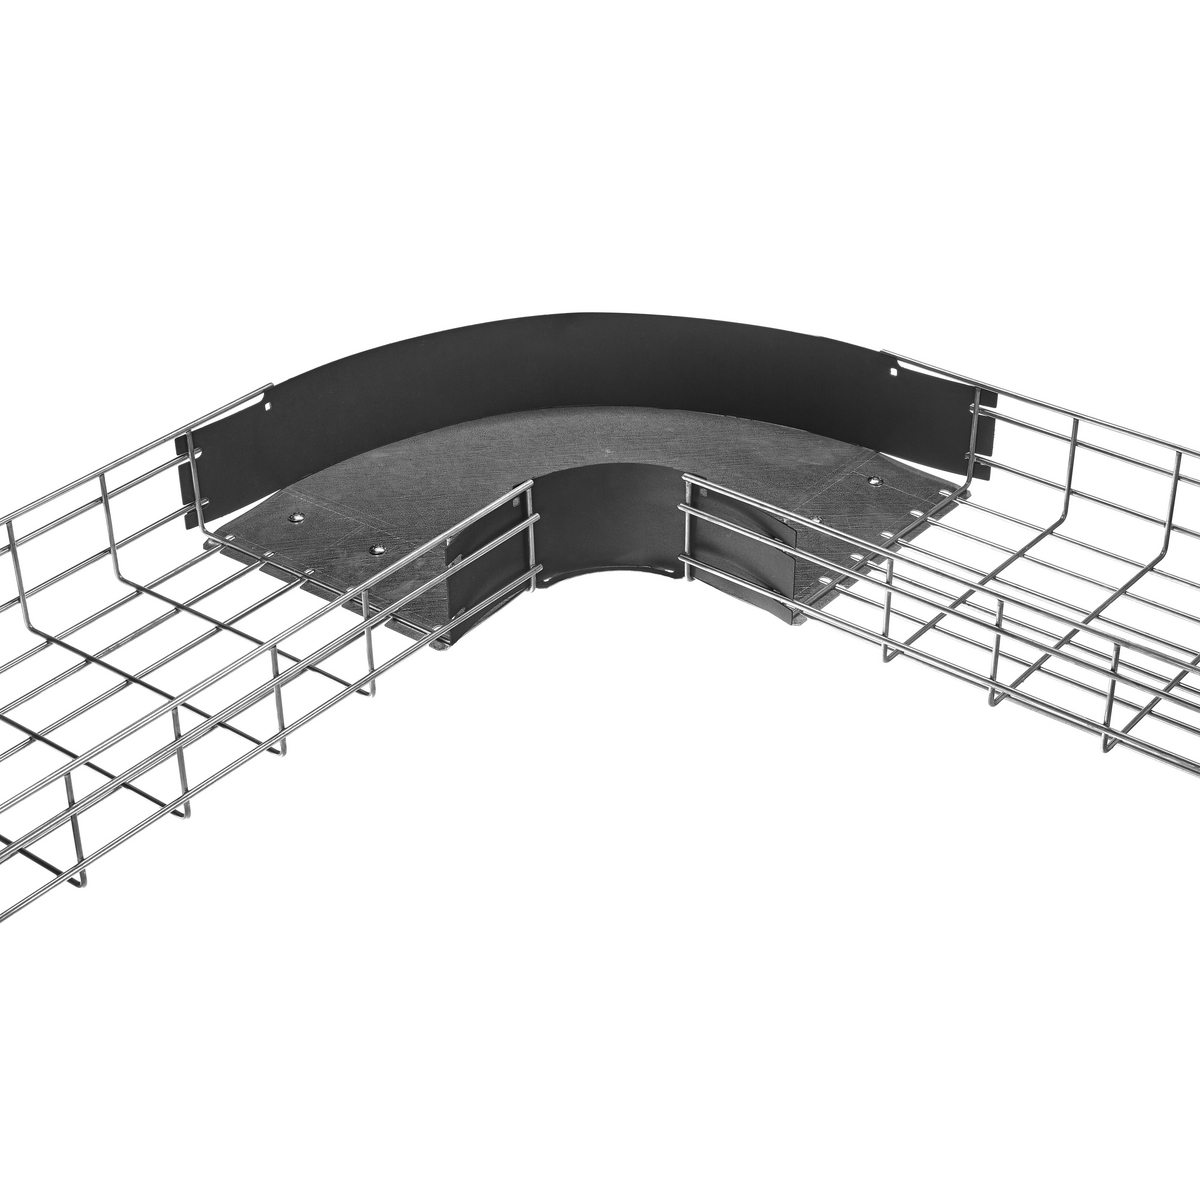 Enclosures Wireways Wire Duct And Cable Trays Electrical Or Wiring Raceway Track Device Kellems Tray Bend Pre Formed Standard 4 In Width